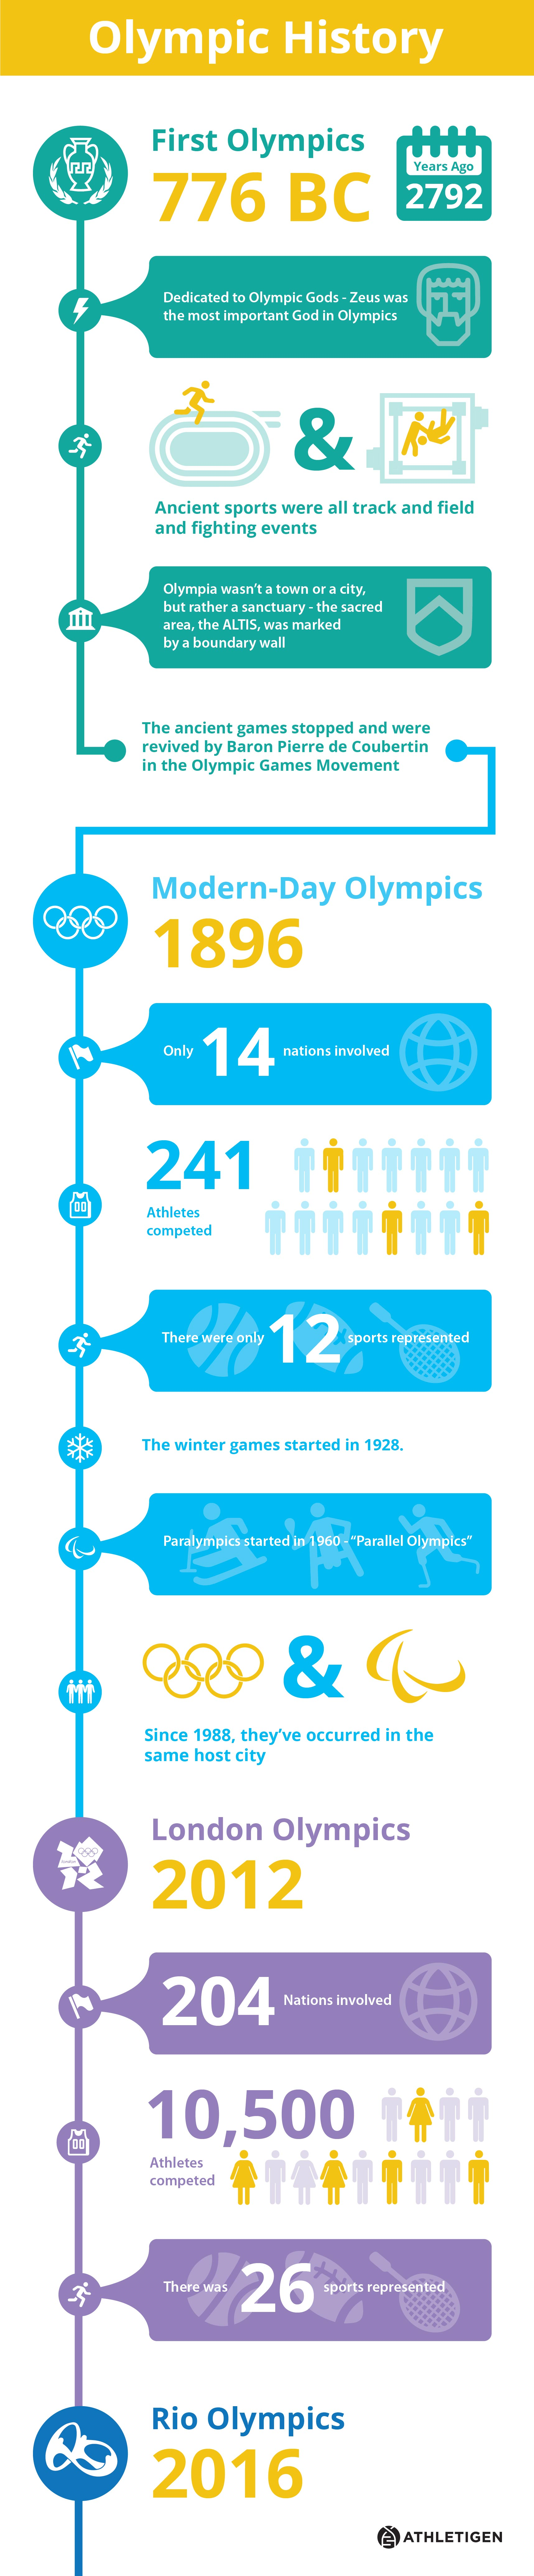 Olympics Infographic-FINAL-01